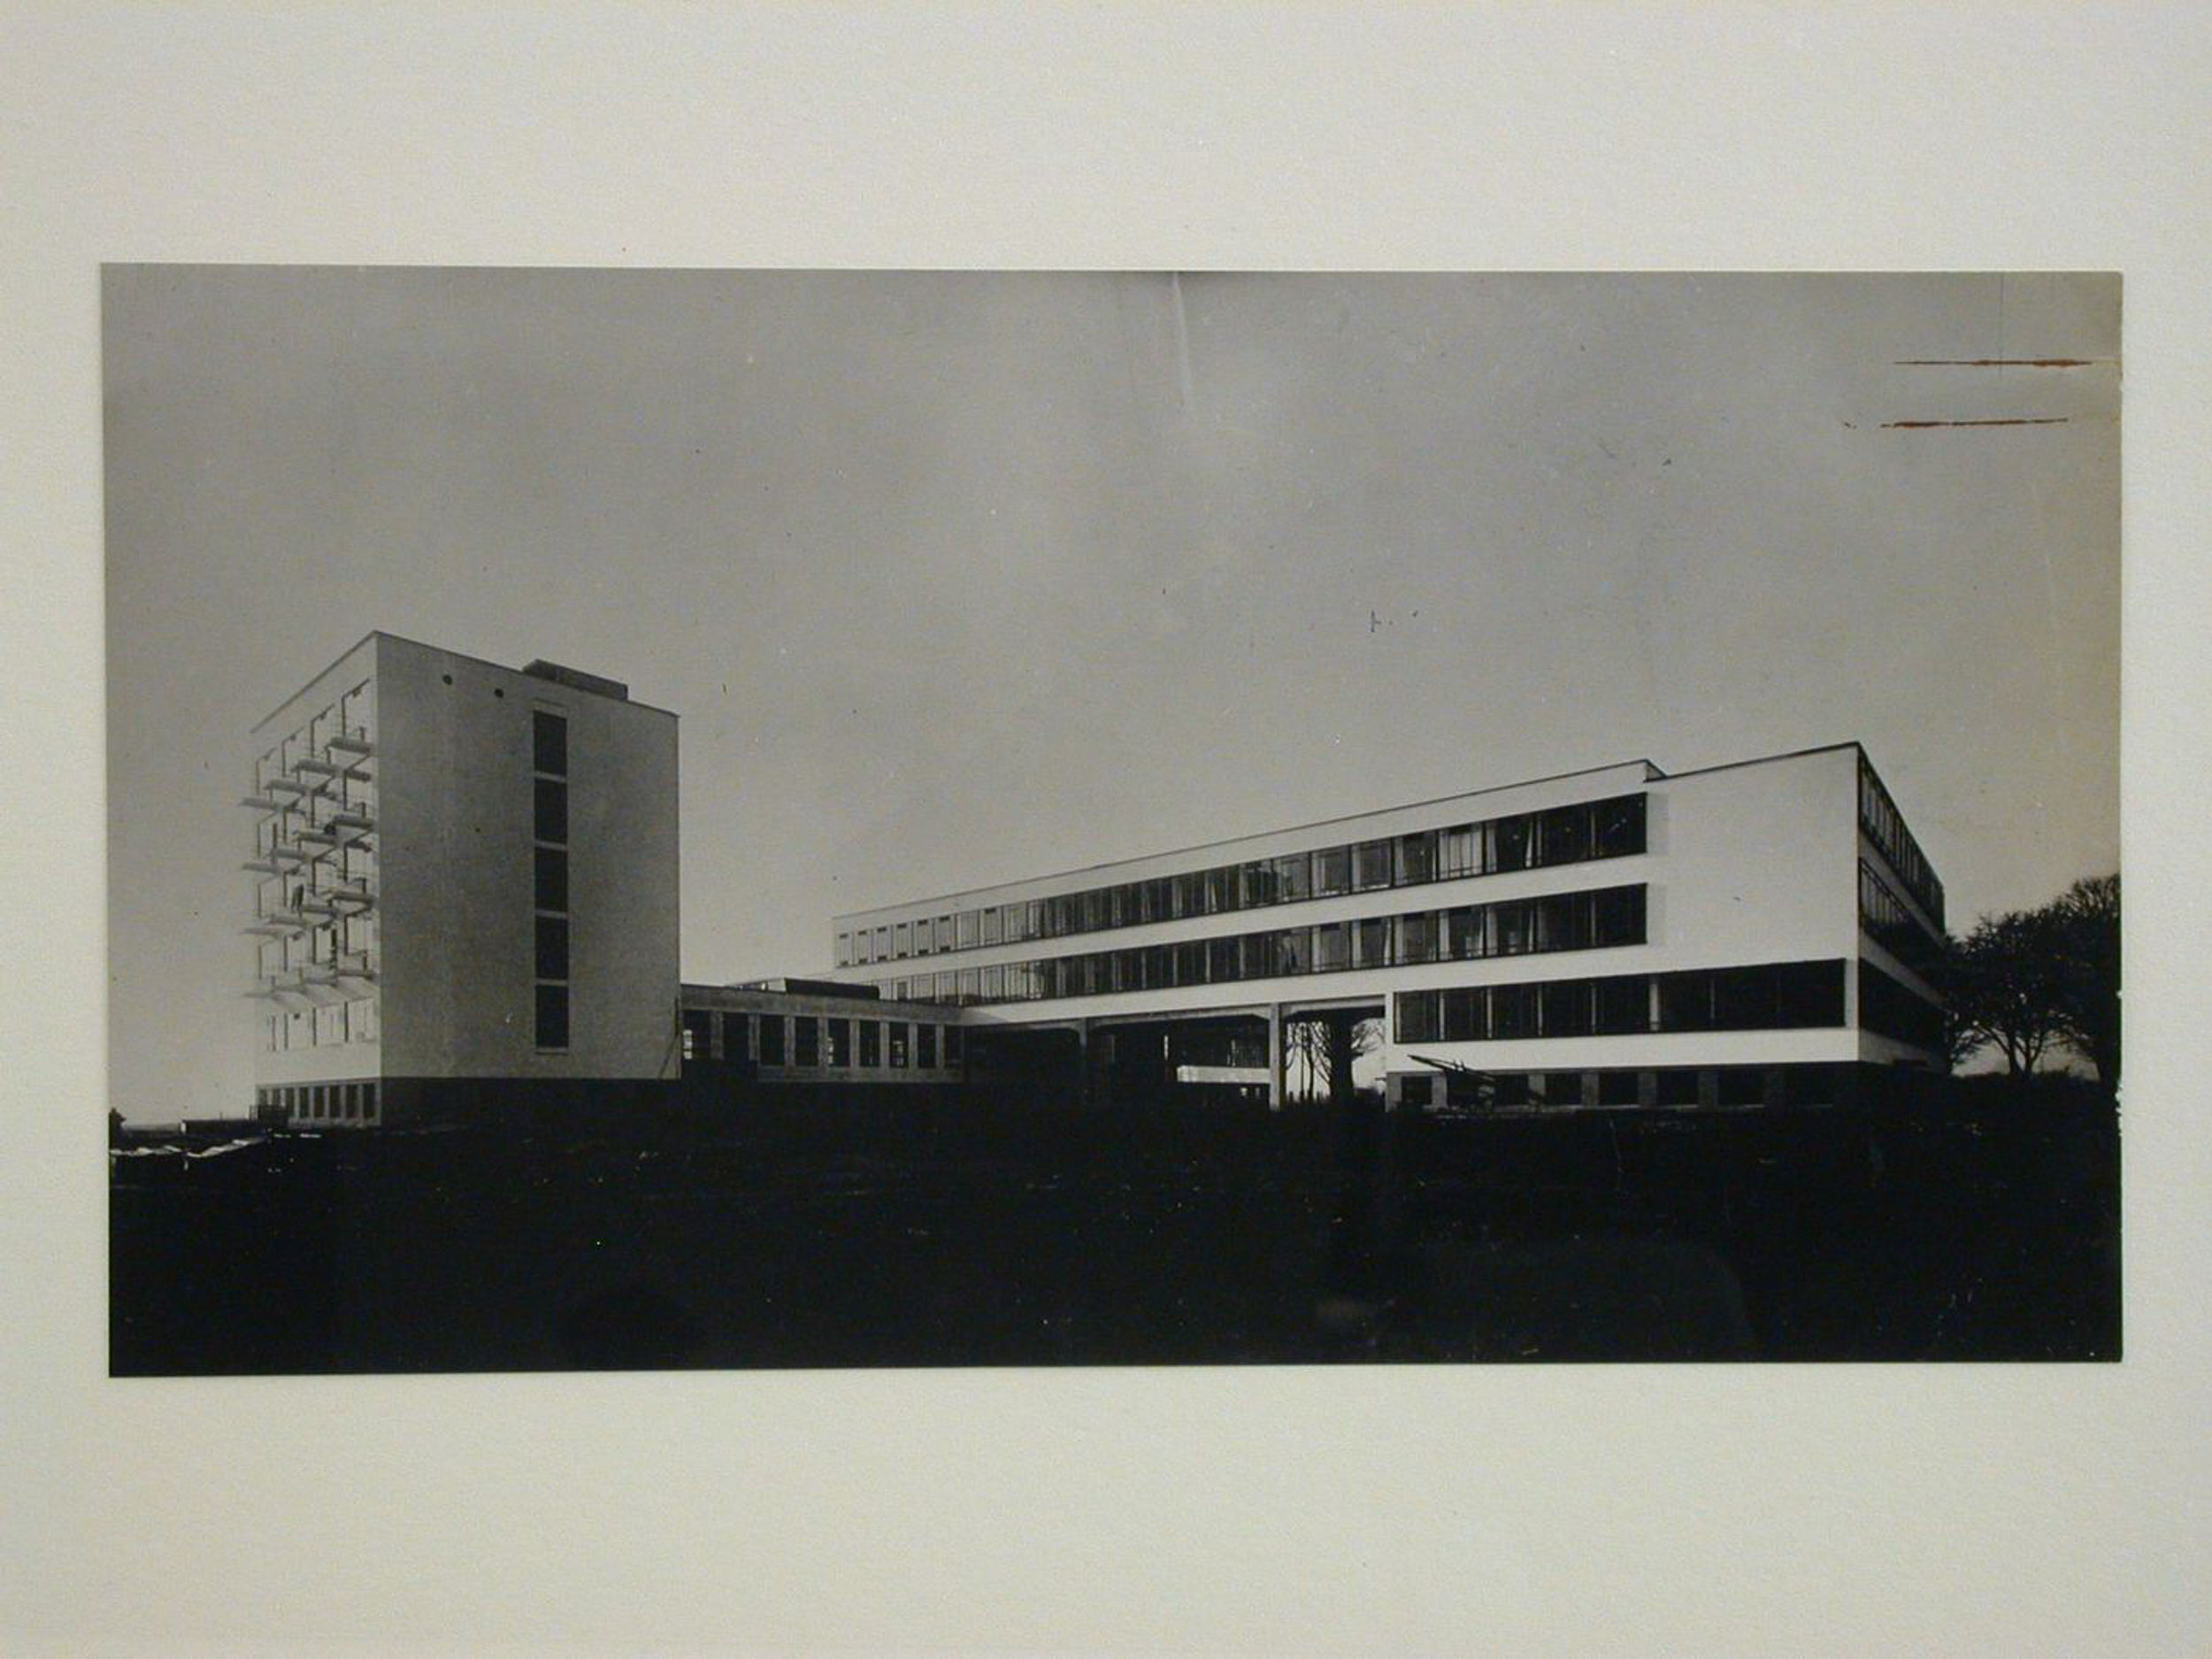 View of the Bauhaus by Walter Gropius, in Dessau, Germany — Collection Centre Canadien d'Architecture/Canadian Centre for Architecture, Montréal